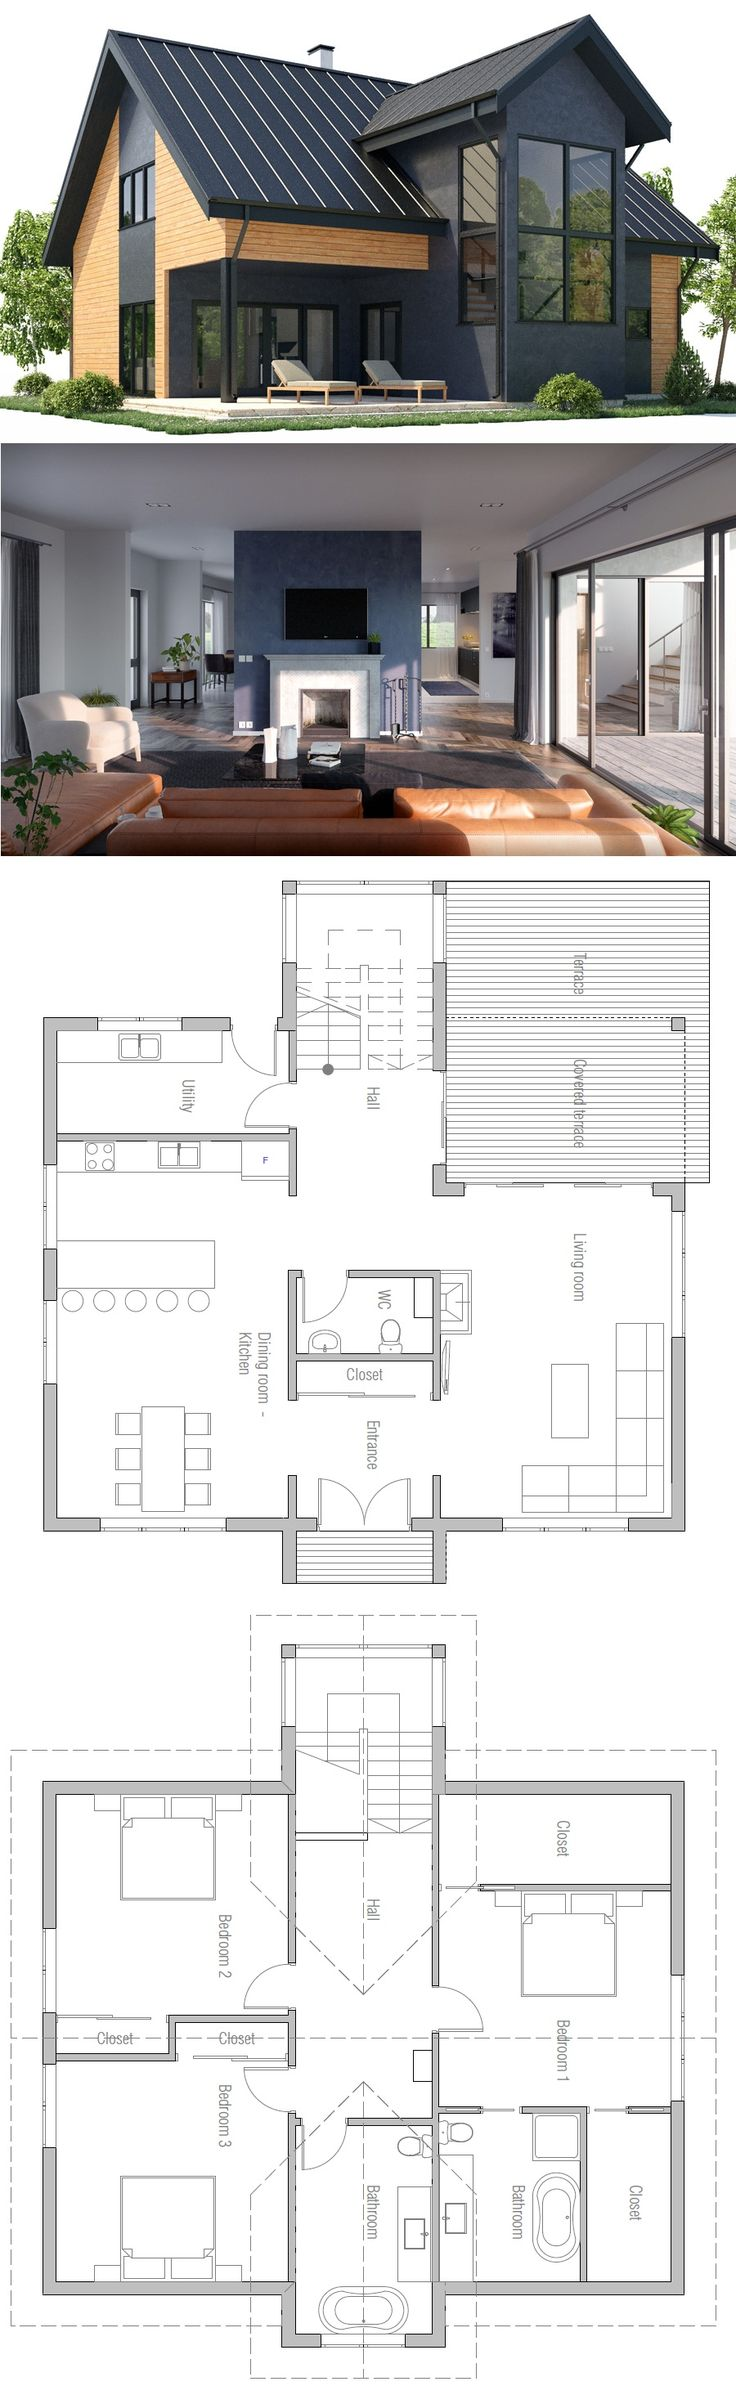 206 best images about sims 3 on pinterest dots sims 4 and warm - House Plan